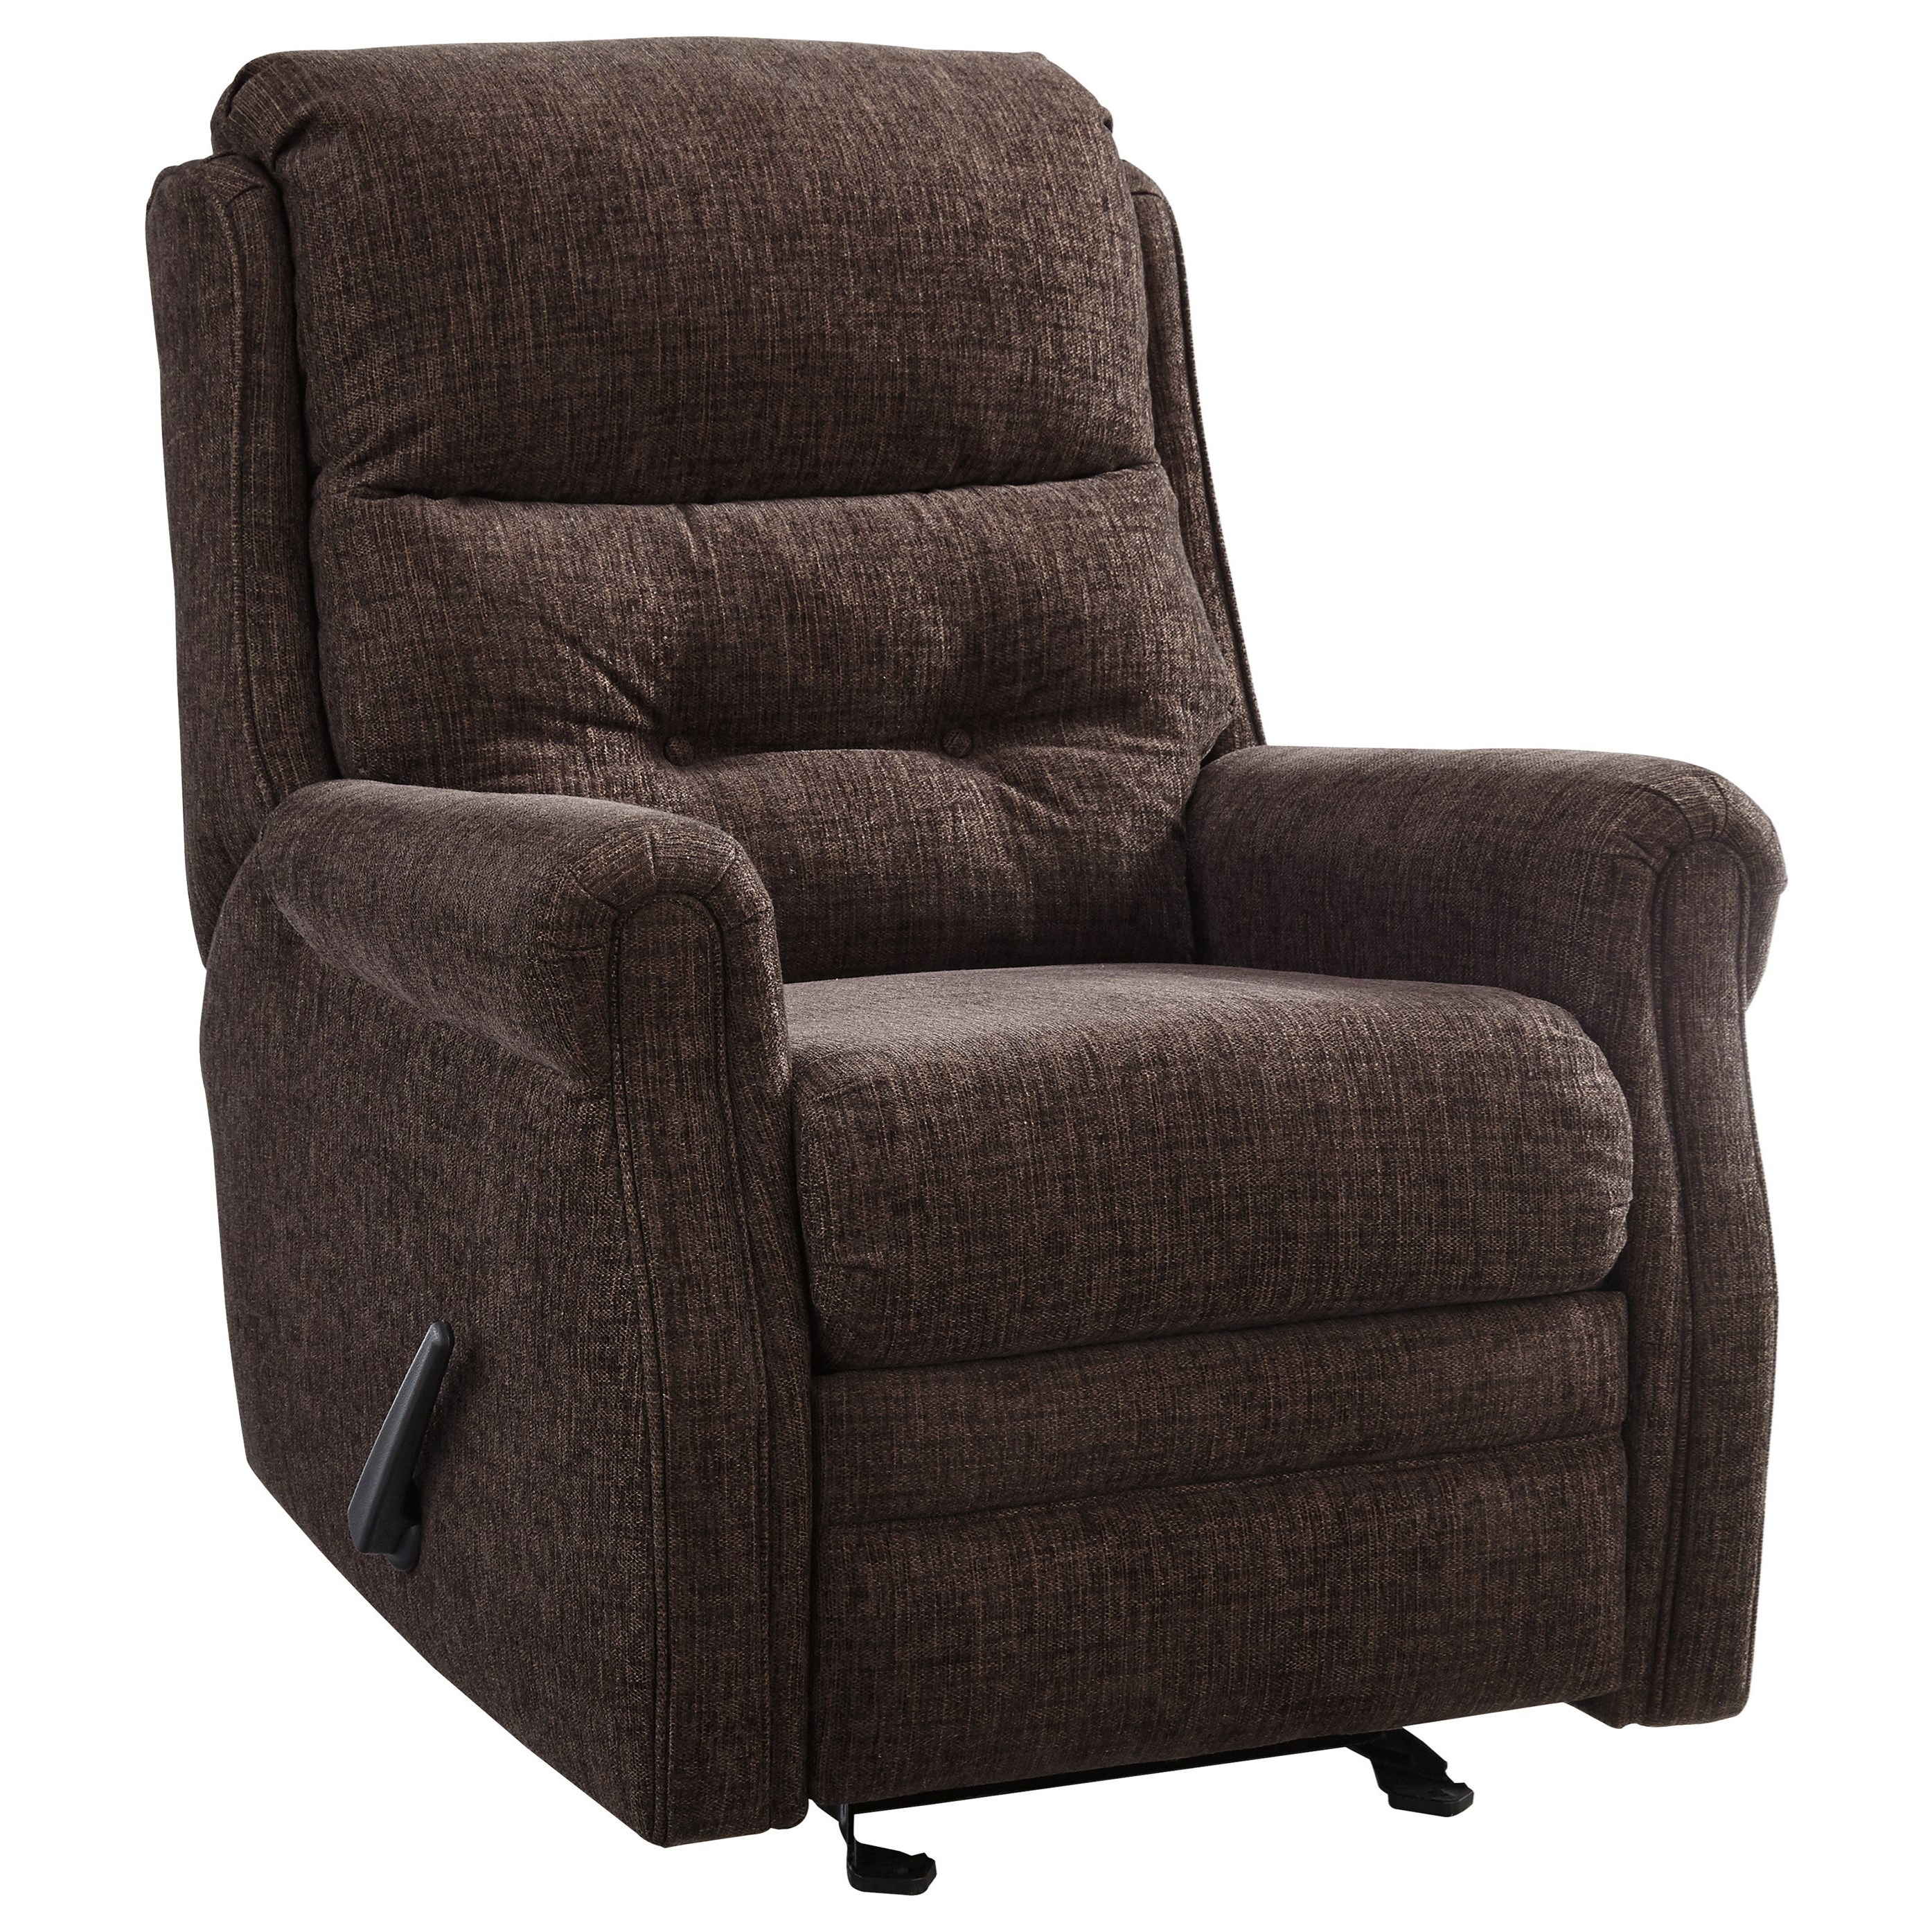 Penzberg Recliner by Signature Design by Ashley at HomeWorld Furniture